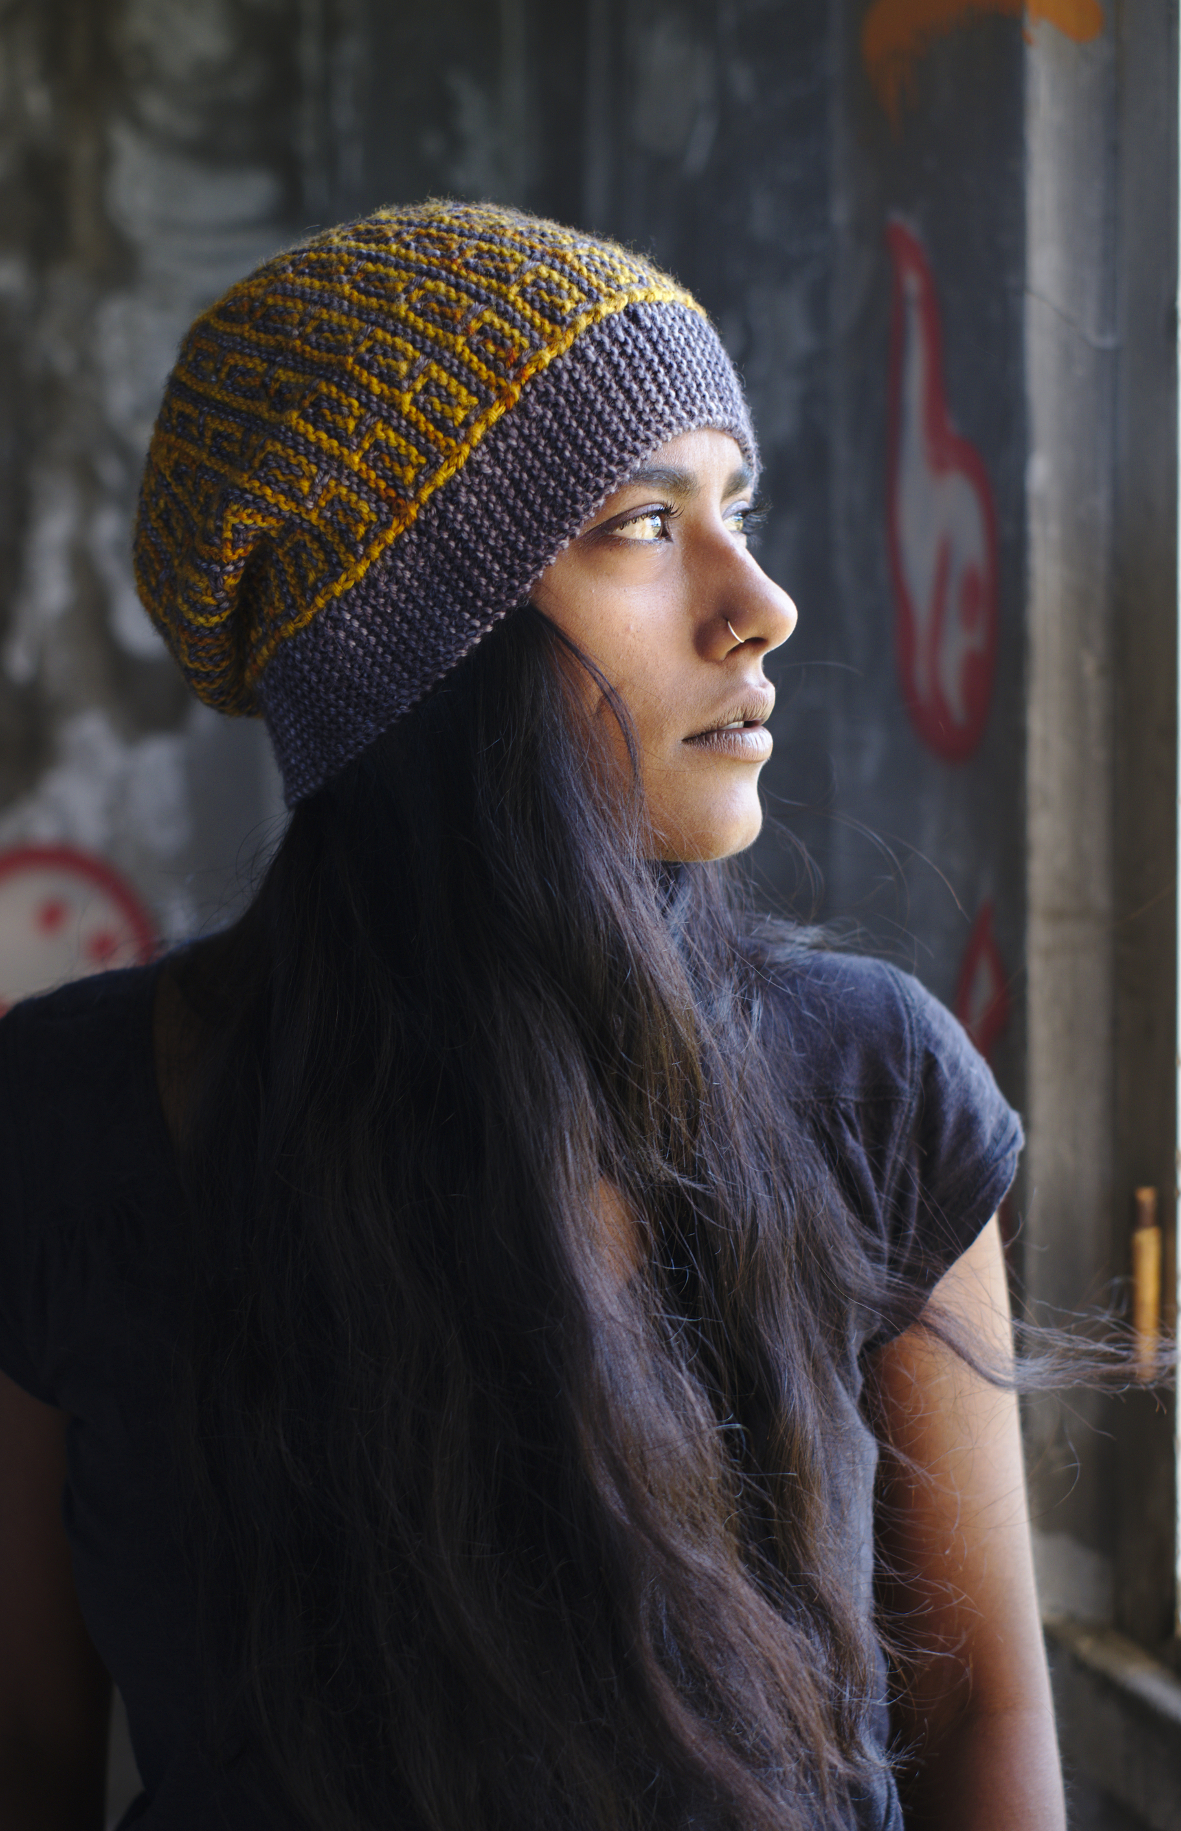 Revolutions sideways knit mosaic slipped stitch colourwork Hat hand knitting pattern for DK yarn